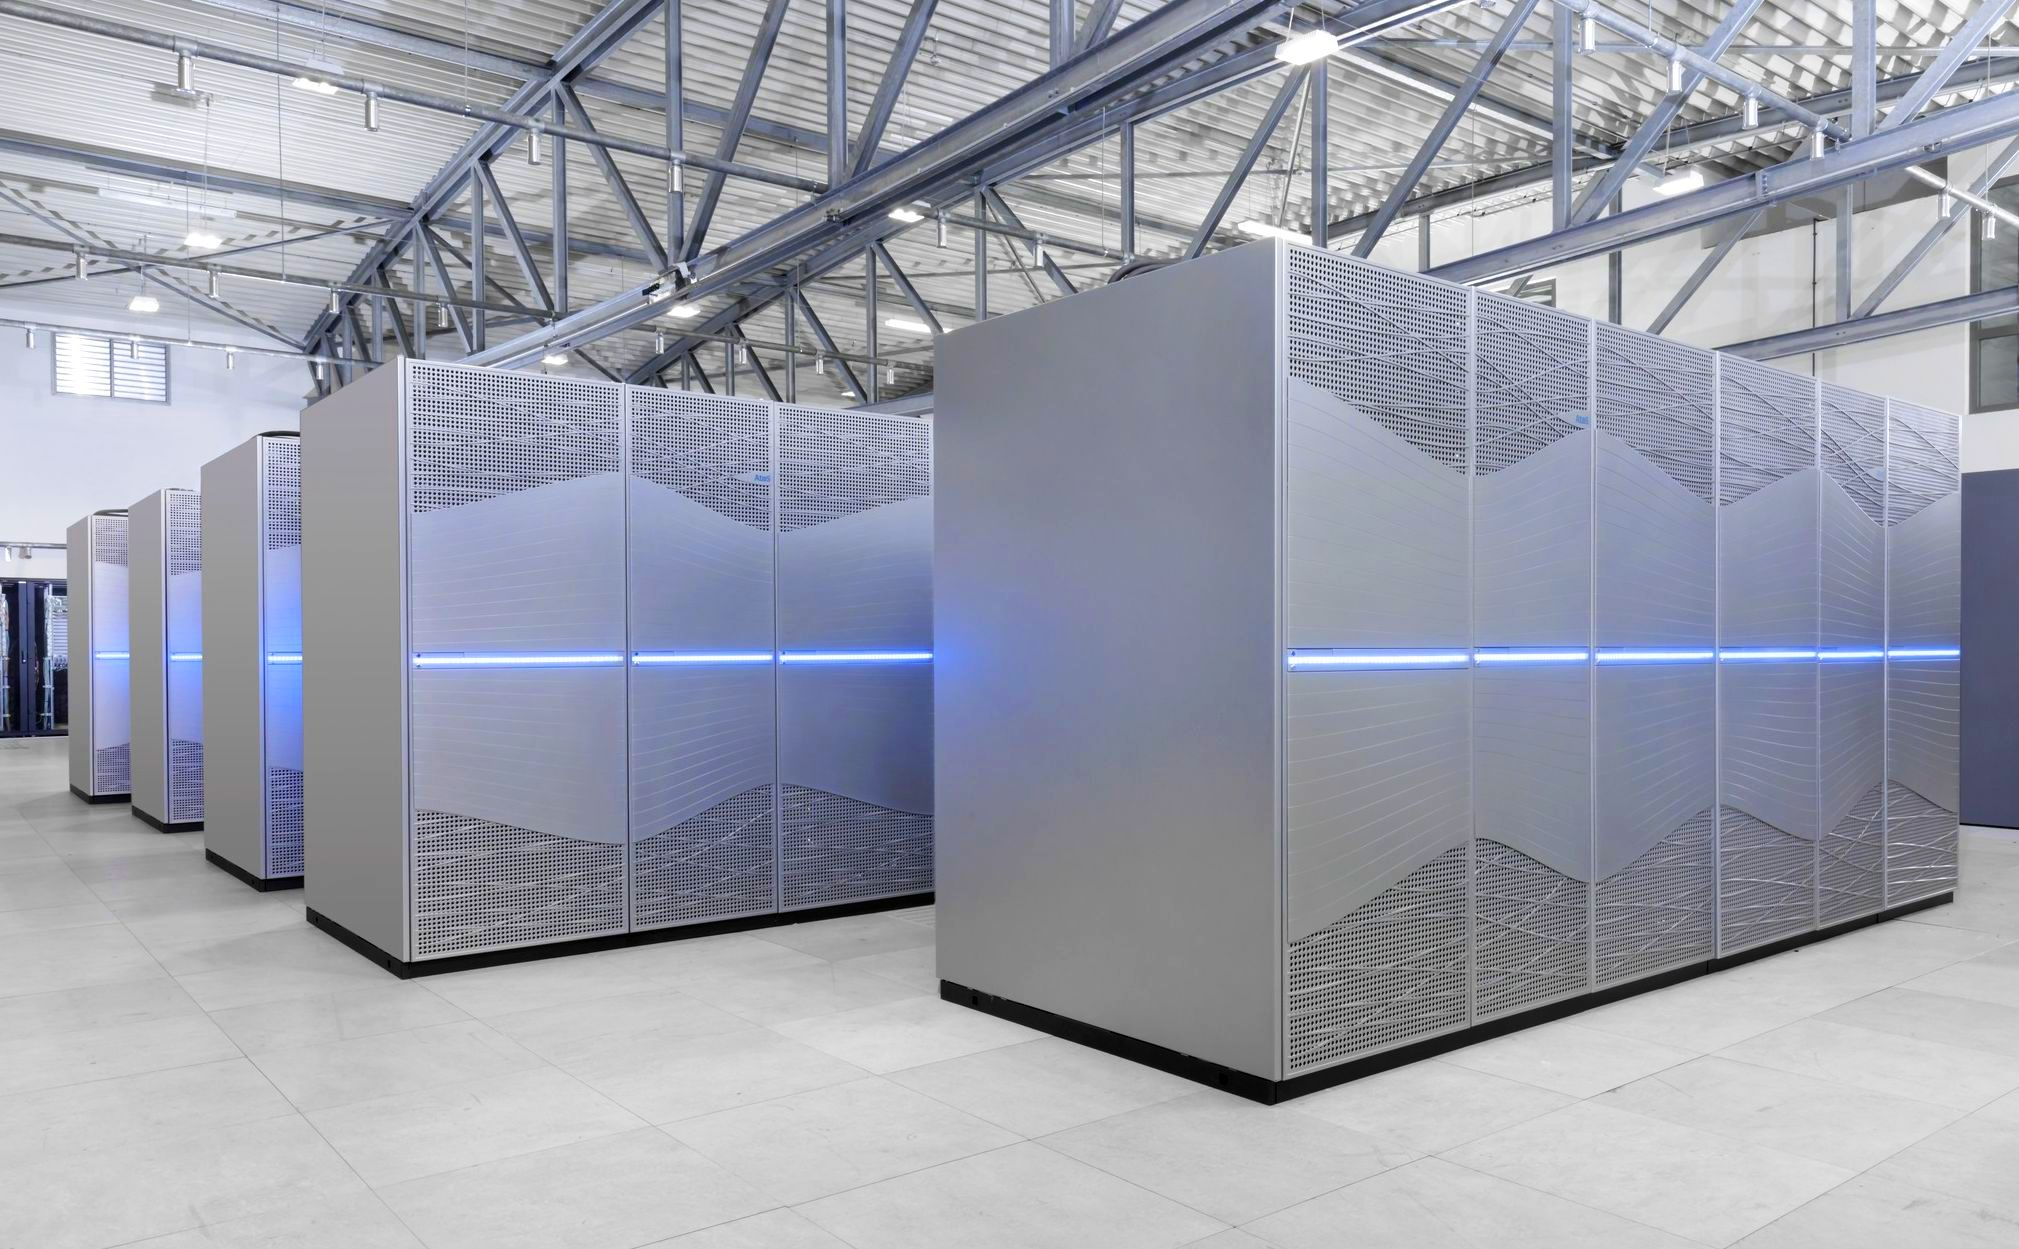 Atos Launches First Supercomputer Equipped with NVIDIA A100 GPU